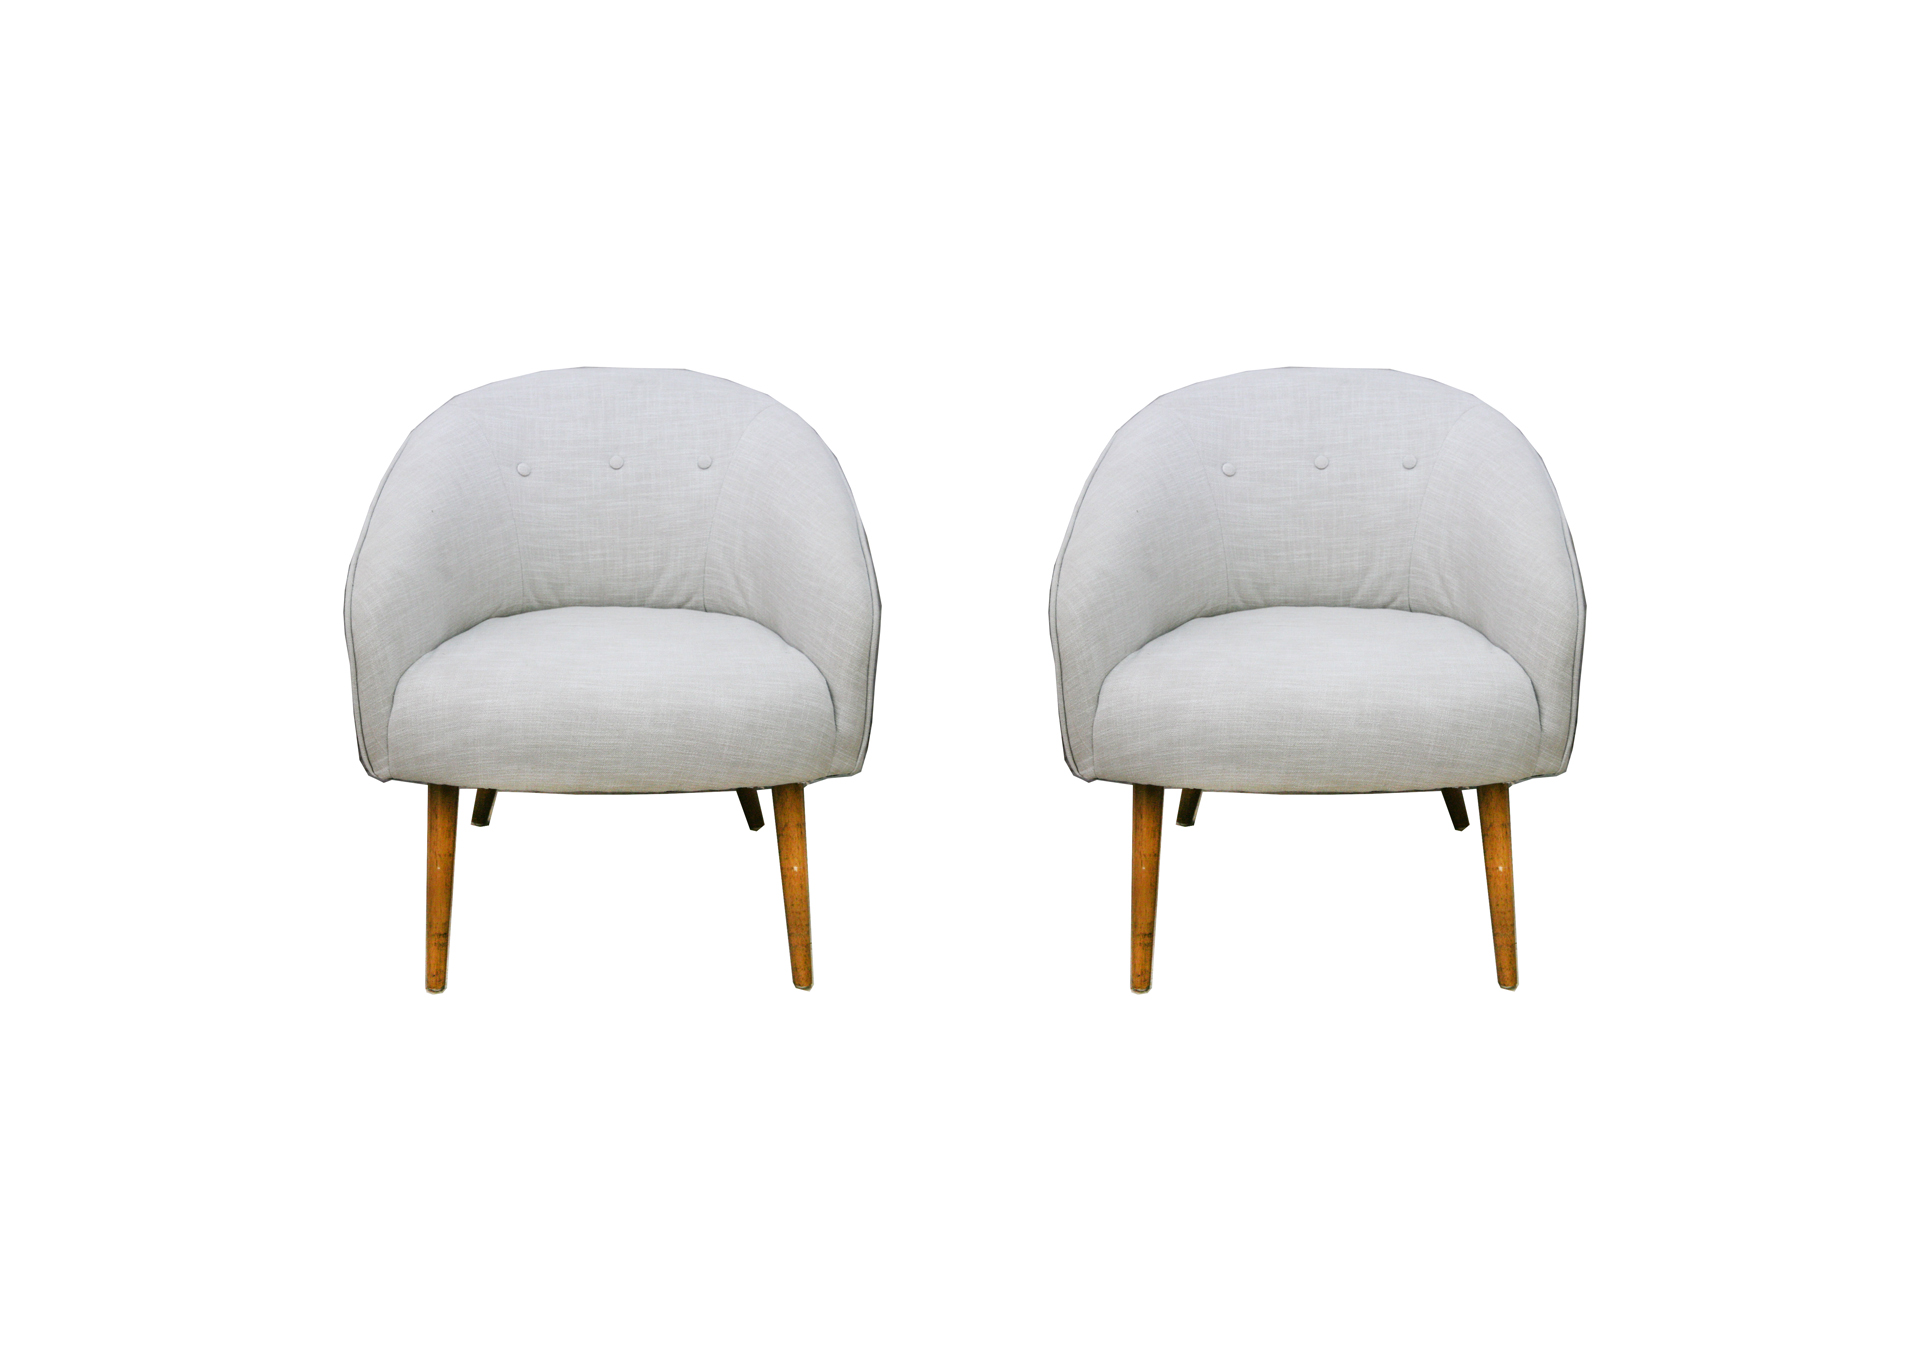 west elm style furniture. Mid Century Modern Style Chairs By West Elm Furniture .